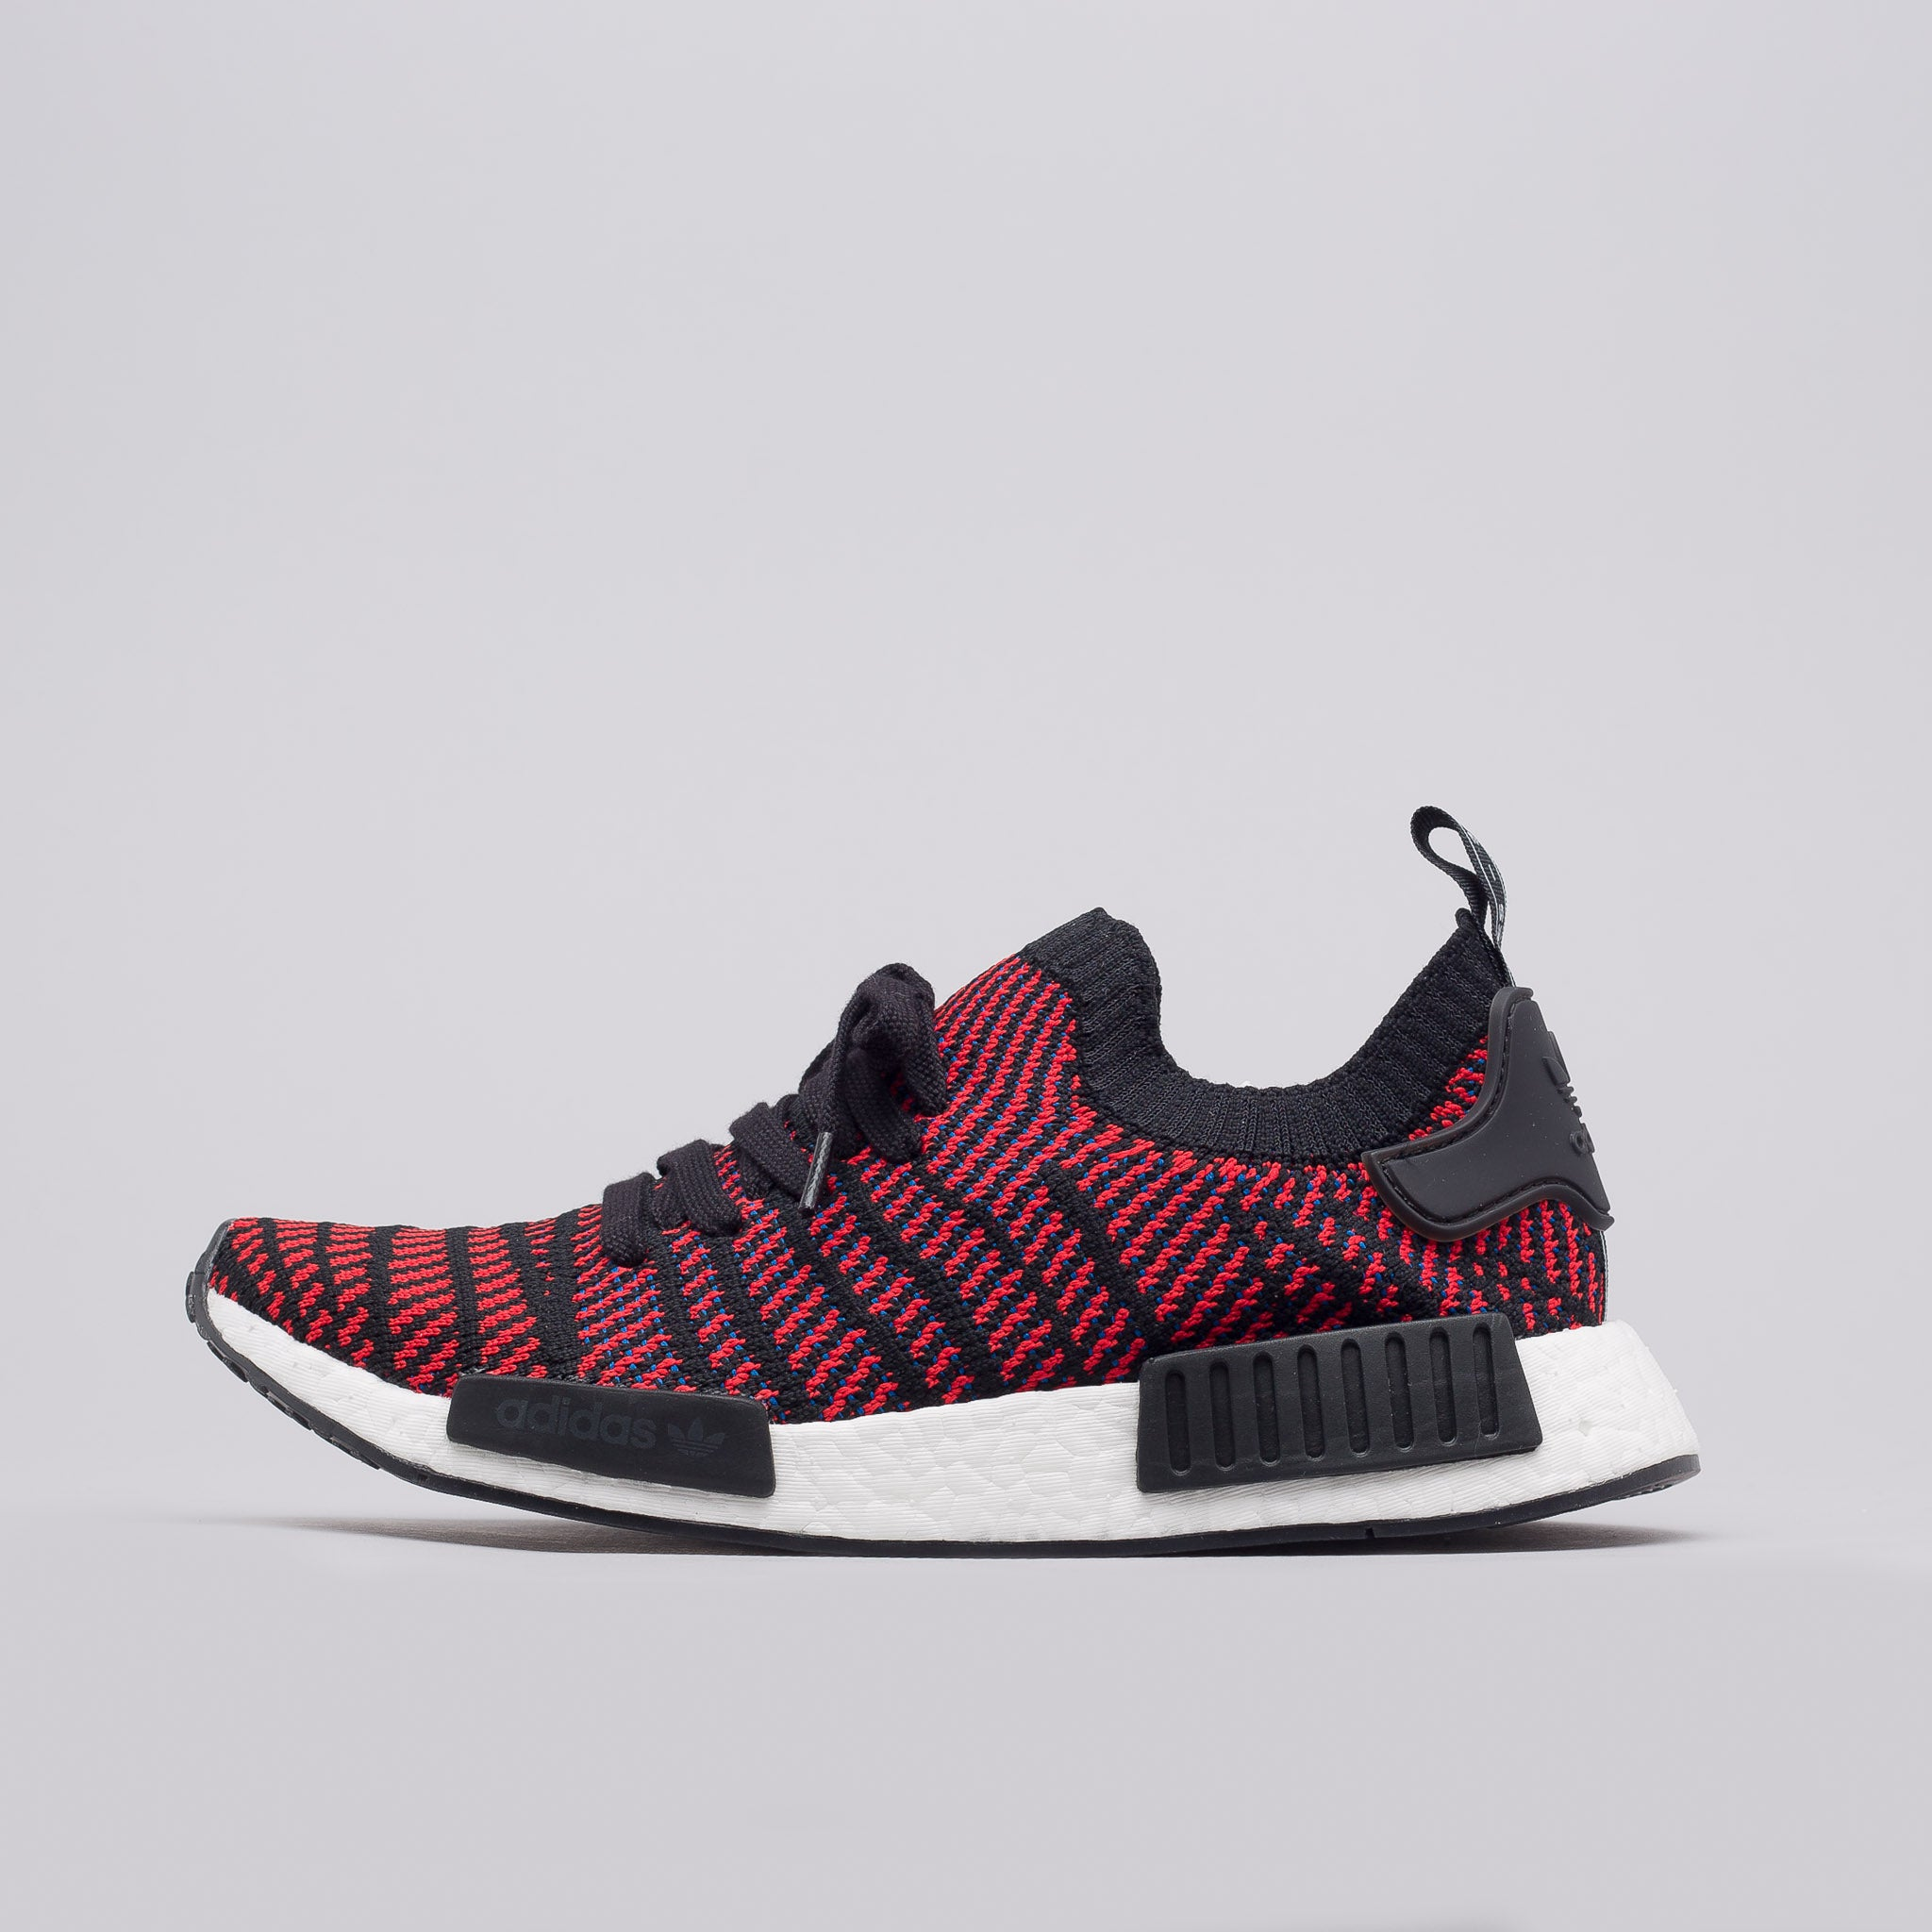 adidas Nomad NMD R1 PK Primeknit Bb2887 Black Color Mens